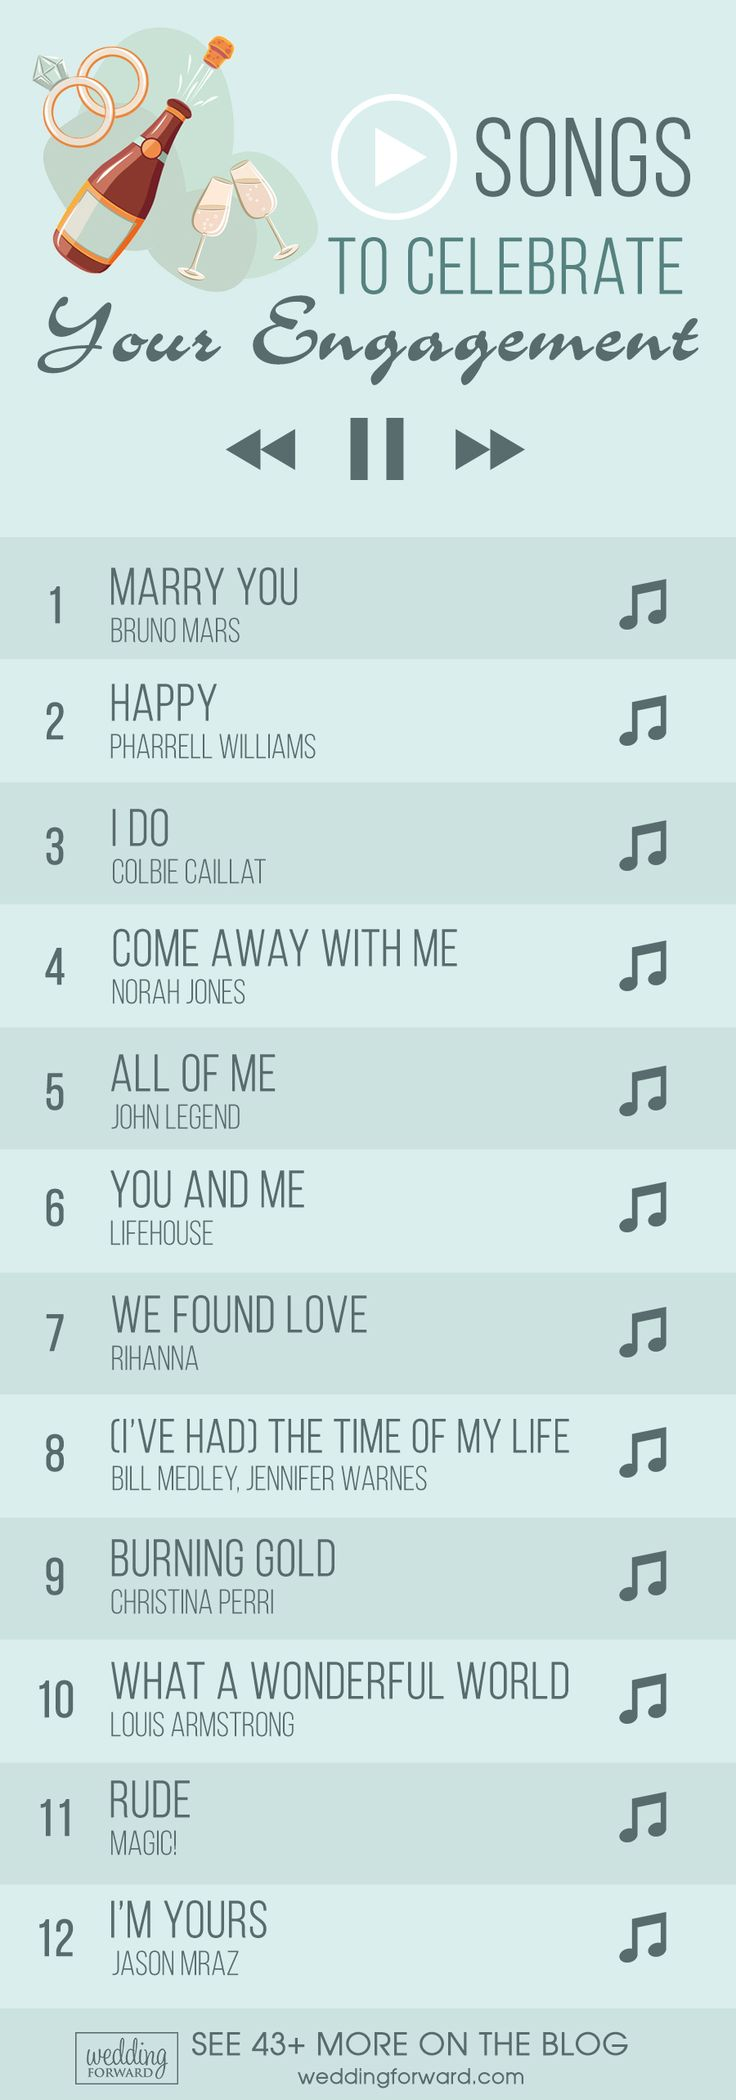 55 Top Engagement Songs For Your Party ? It's time to start thinking about engagement party music and playlist. Here you find 3 playlists of engagement songs that help you make your engagement party unforgettable. See more: http://www.weddingforward.com/engagement-songs/ #wedding #engagement #songs #party #playlist